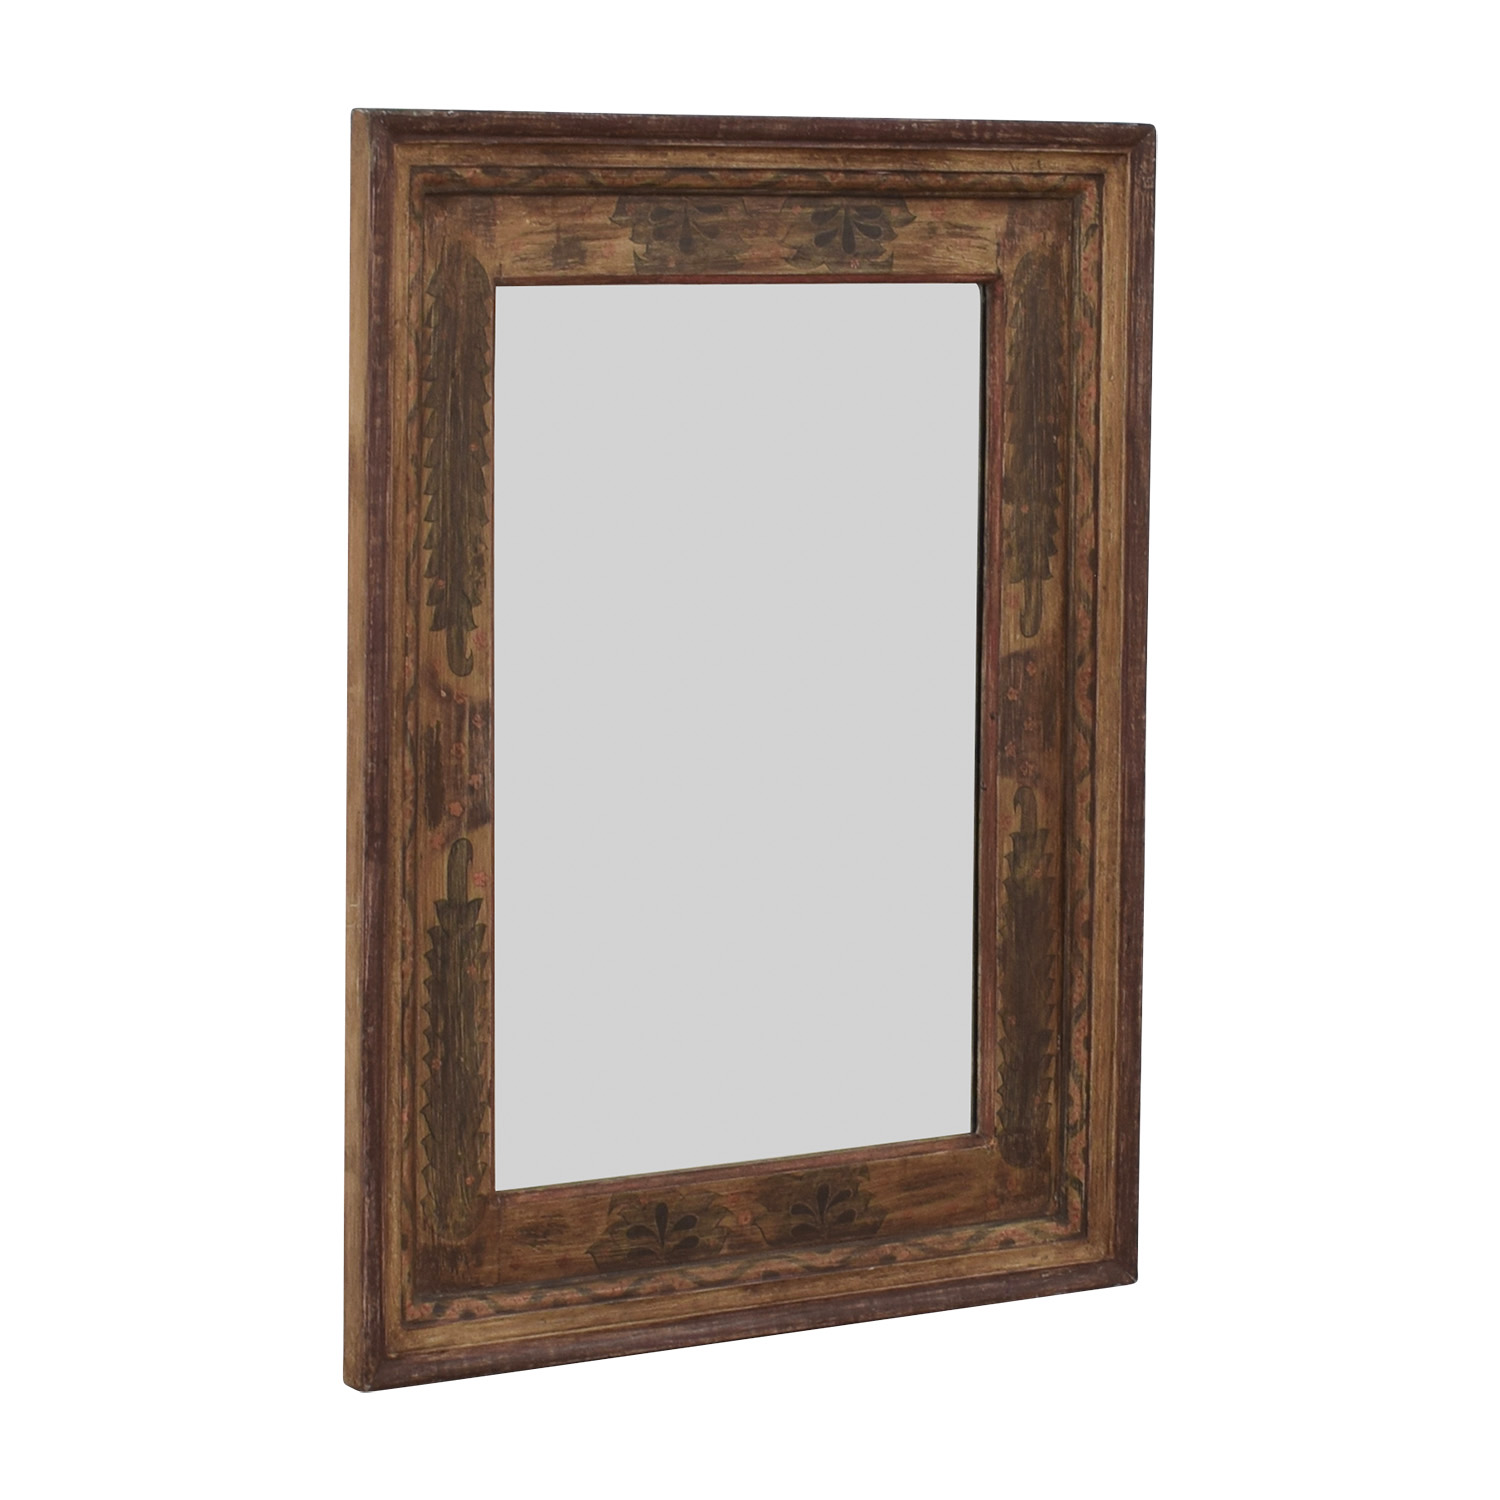 Pottery Barn Pottery Barn Painted Wooden Mirror